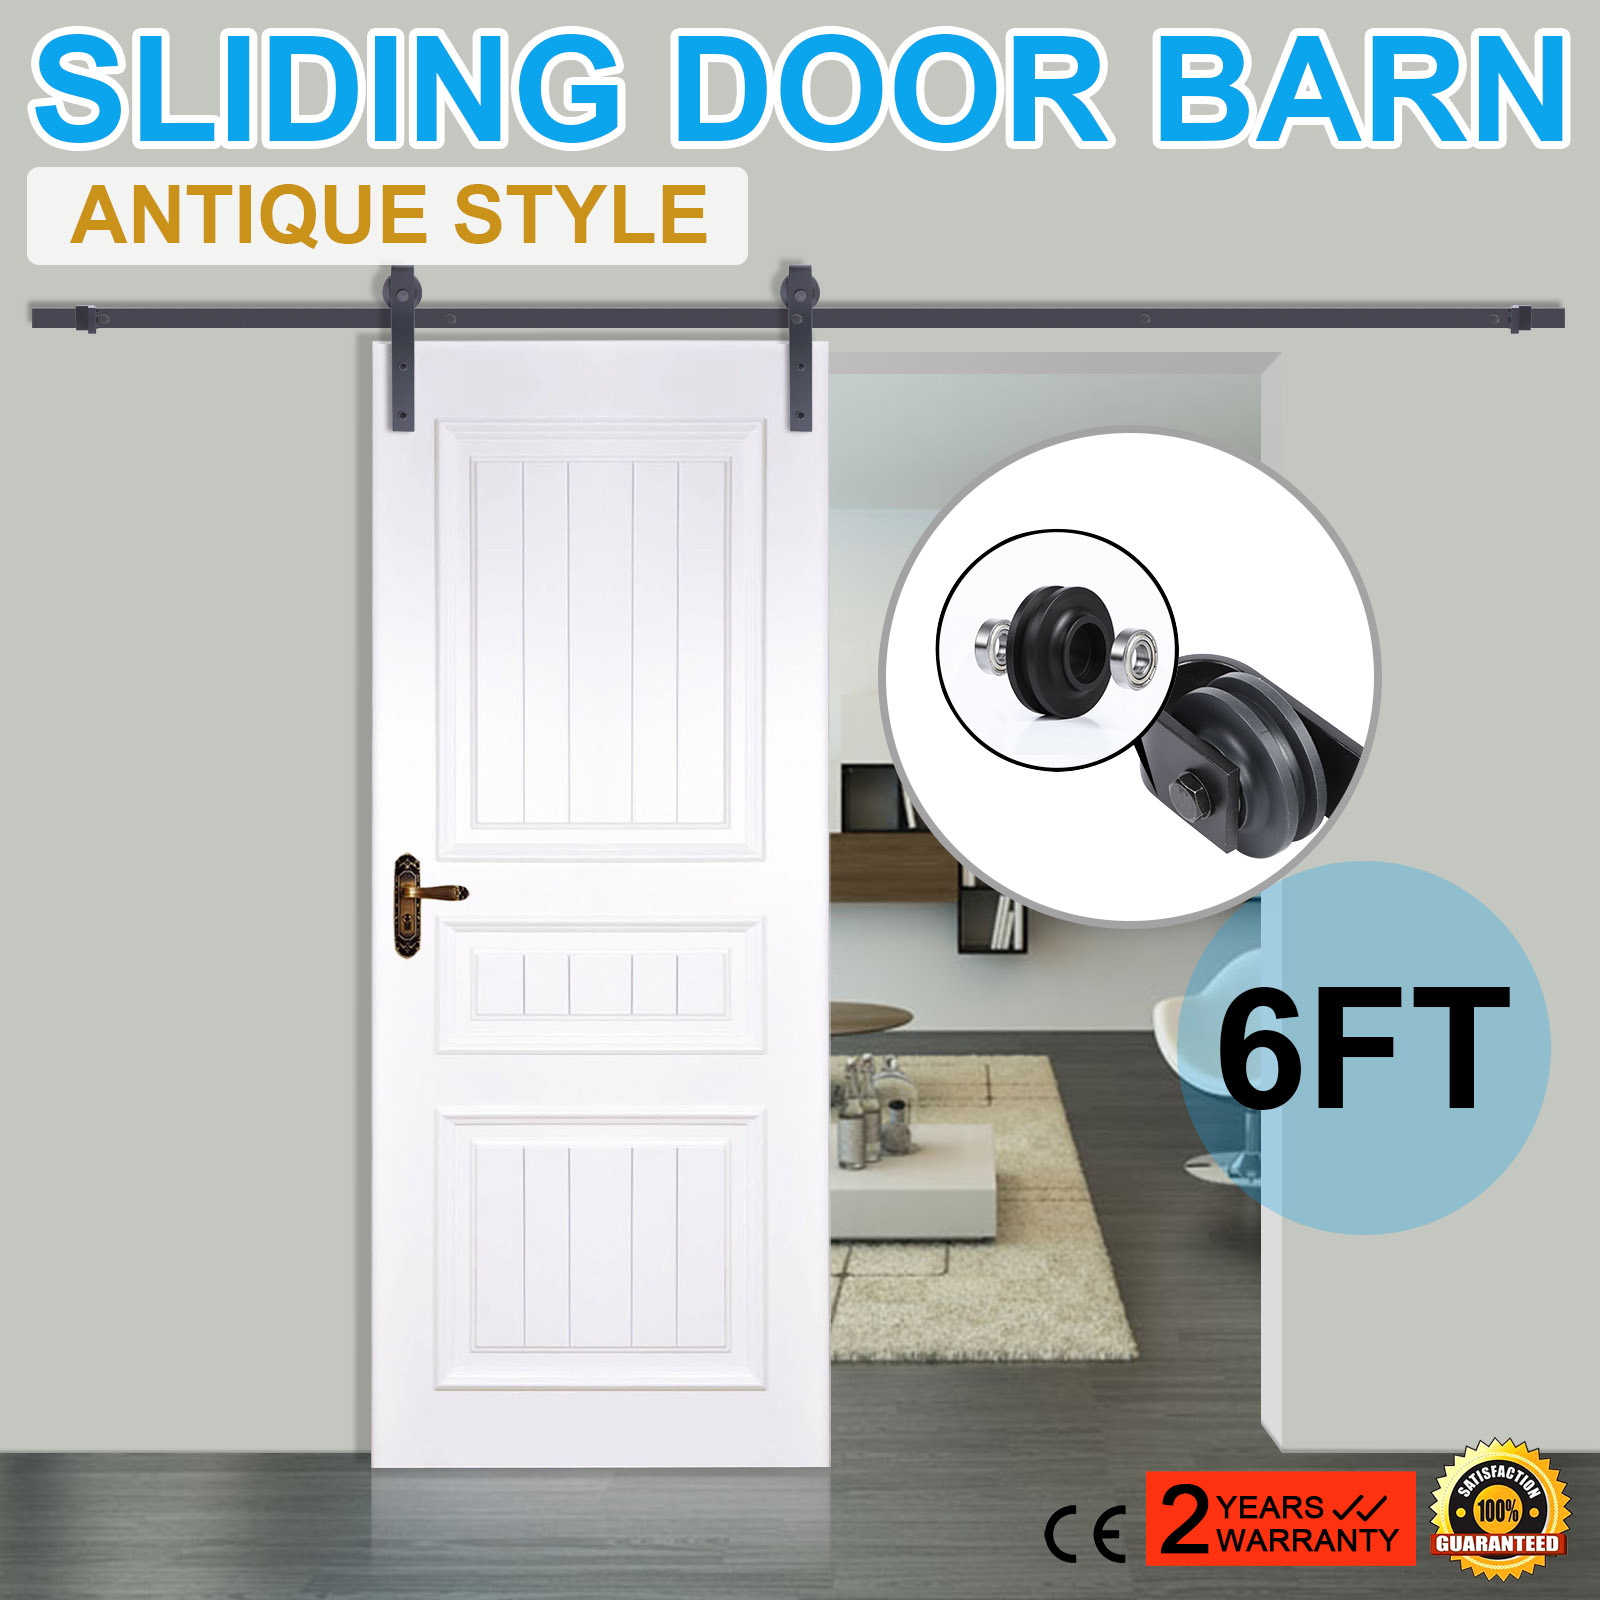 modern find homcom door set interior stainless double guides quotations sliding shopping flat barn hardware get steel kit barns cheap